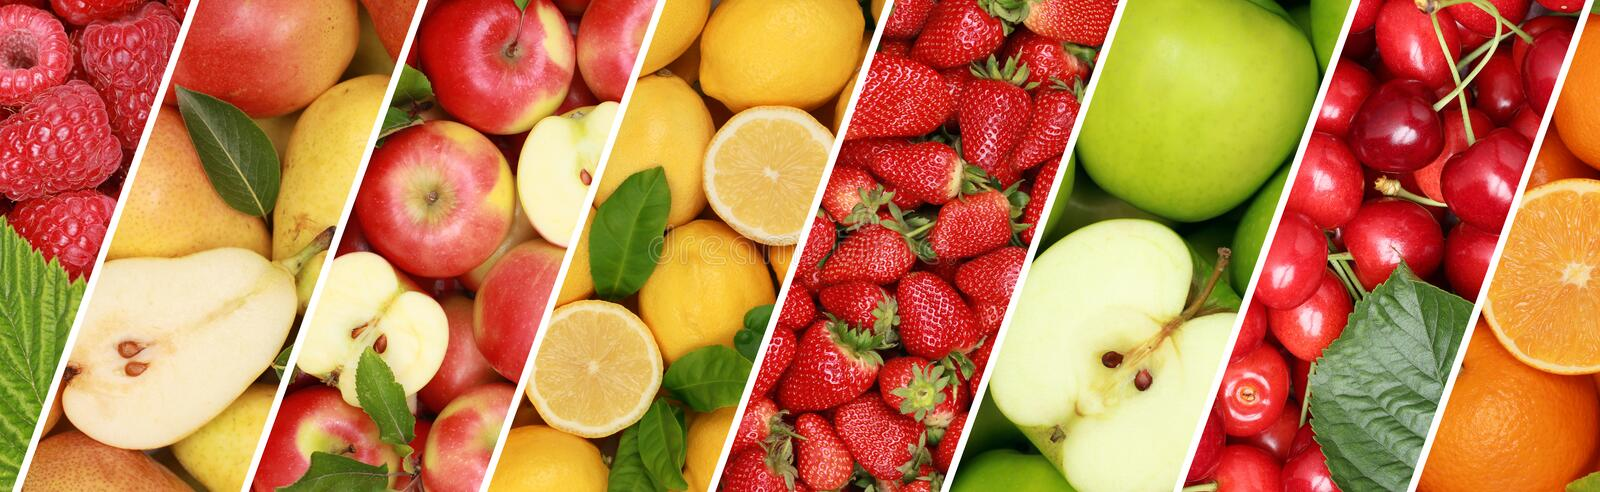 Fruits fruit food collection background banner orange apple apples lemon stock photography